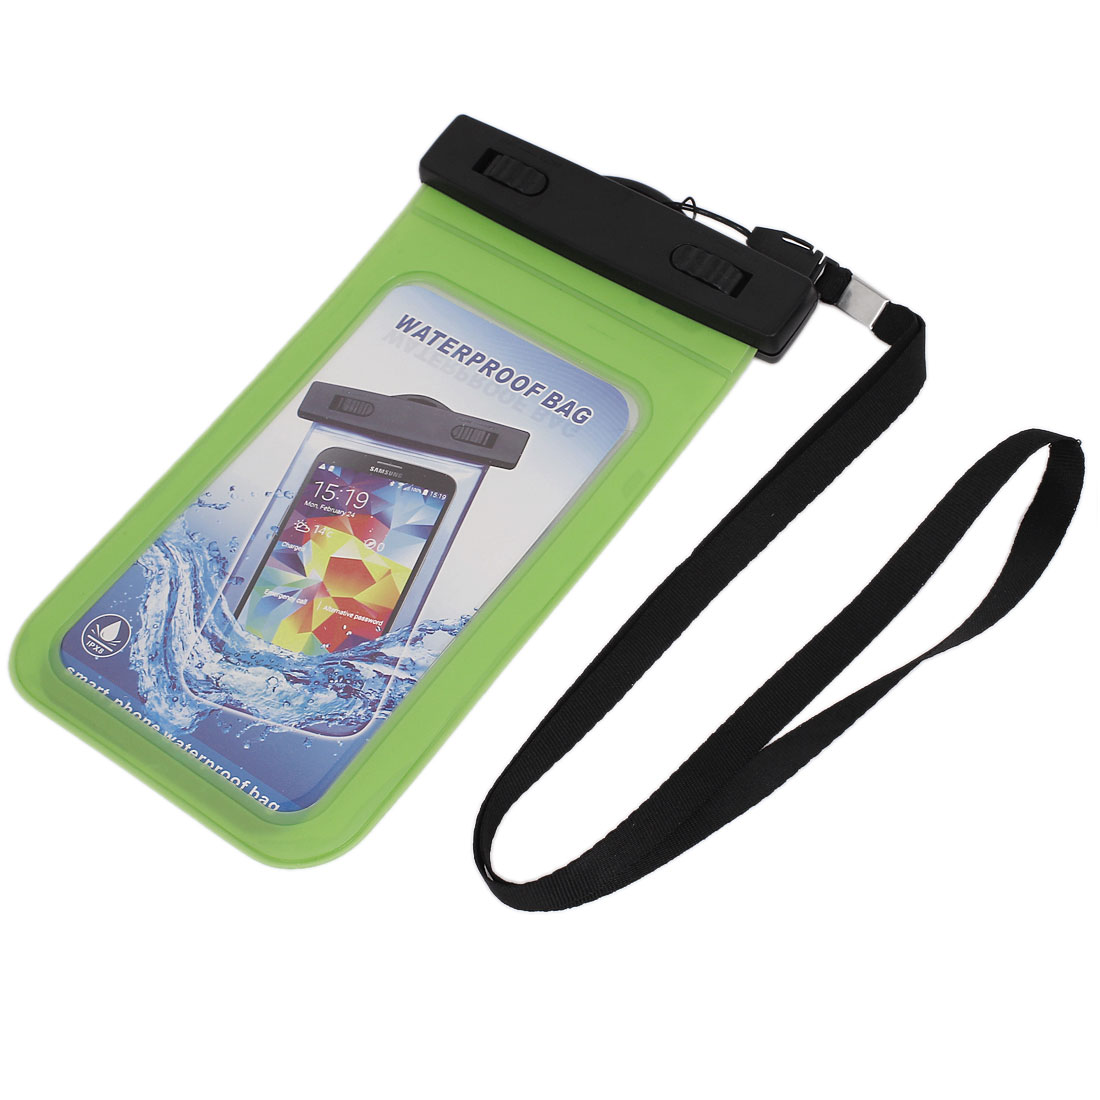 """Waterproof Bag Holder Pouch Green for 5.5"""" Mobile Phone w Neck Strap"""